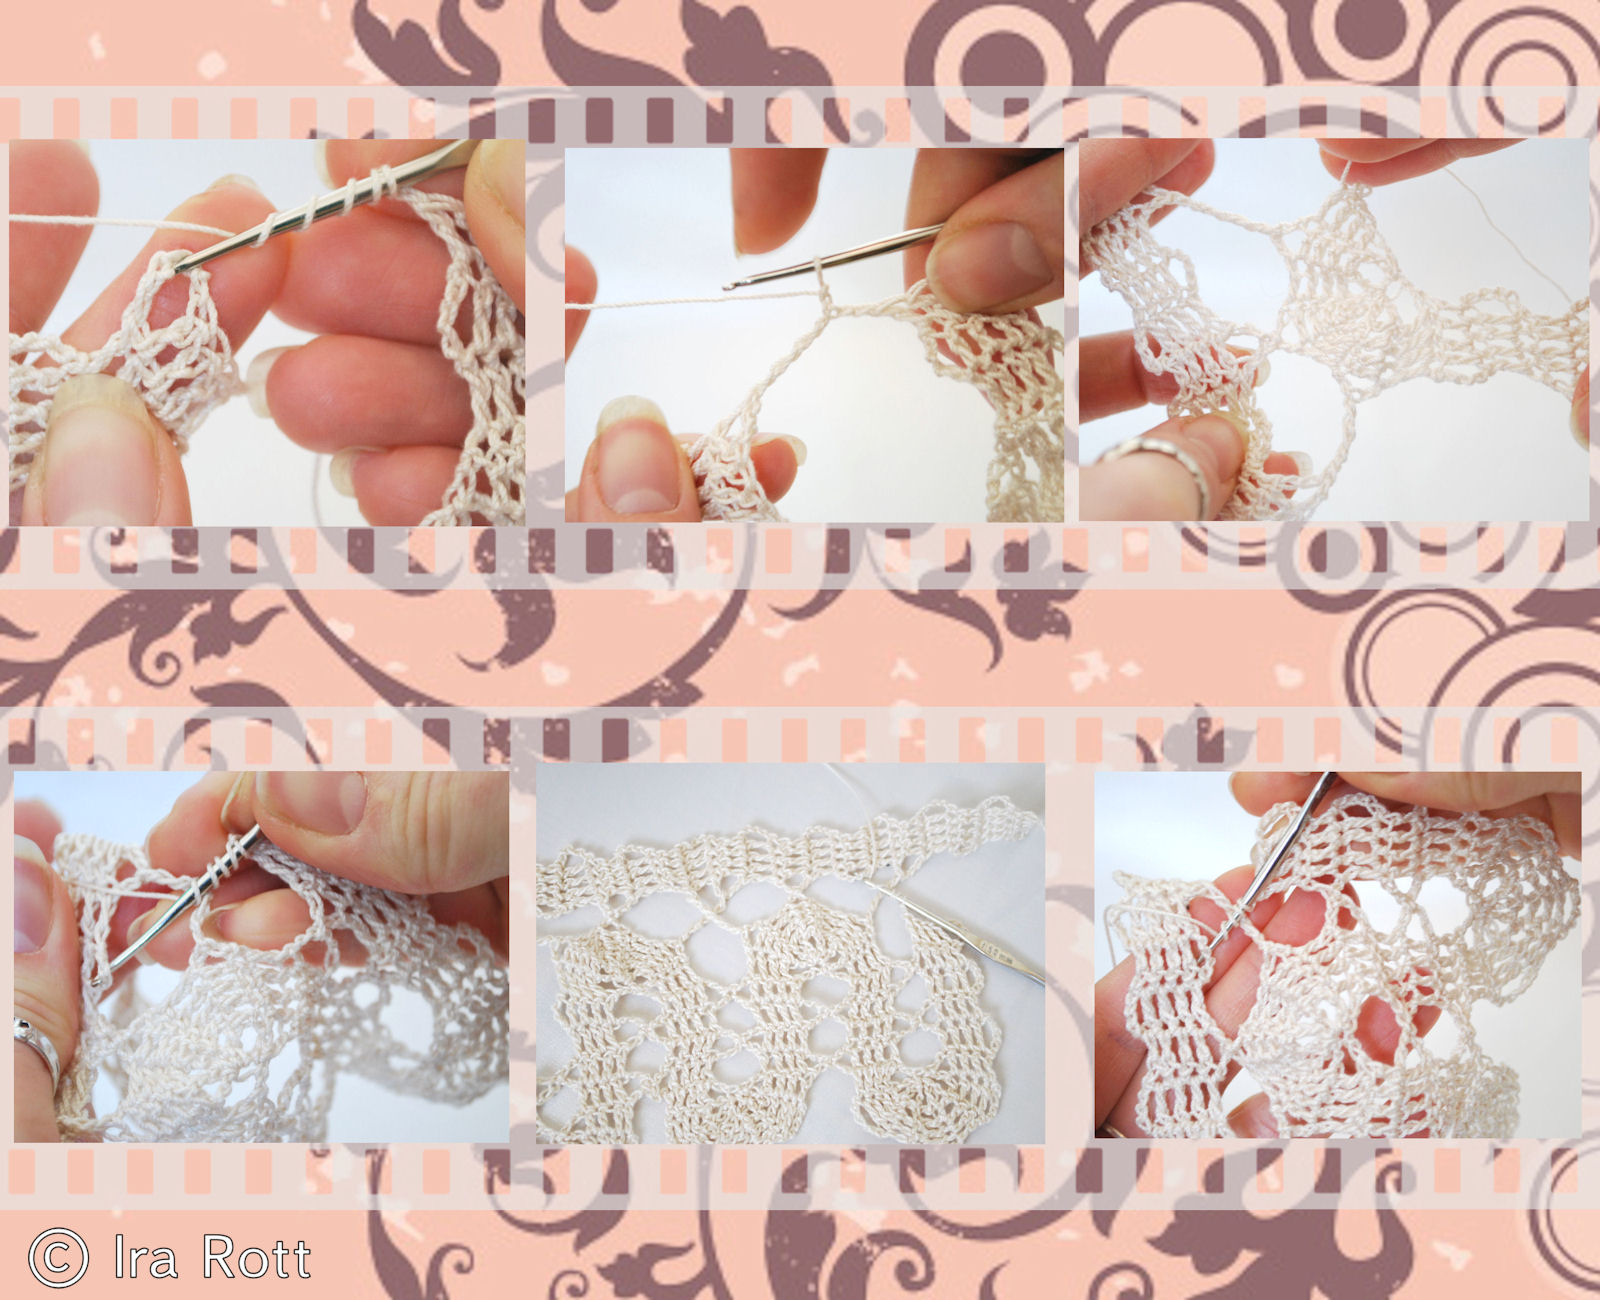 Bruges Crochet http://irarott.blogspot.com/2011/03/bruges-lace-crochet-old-technique-and.html